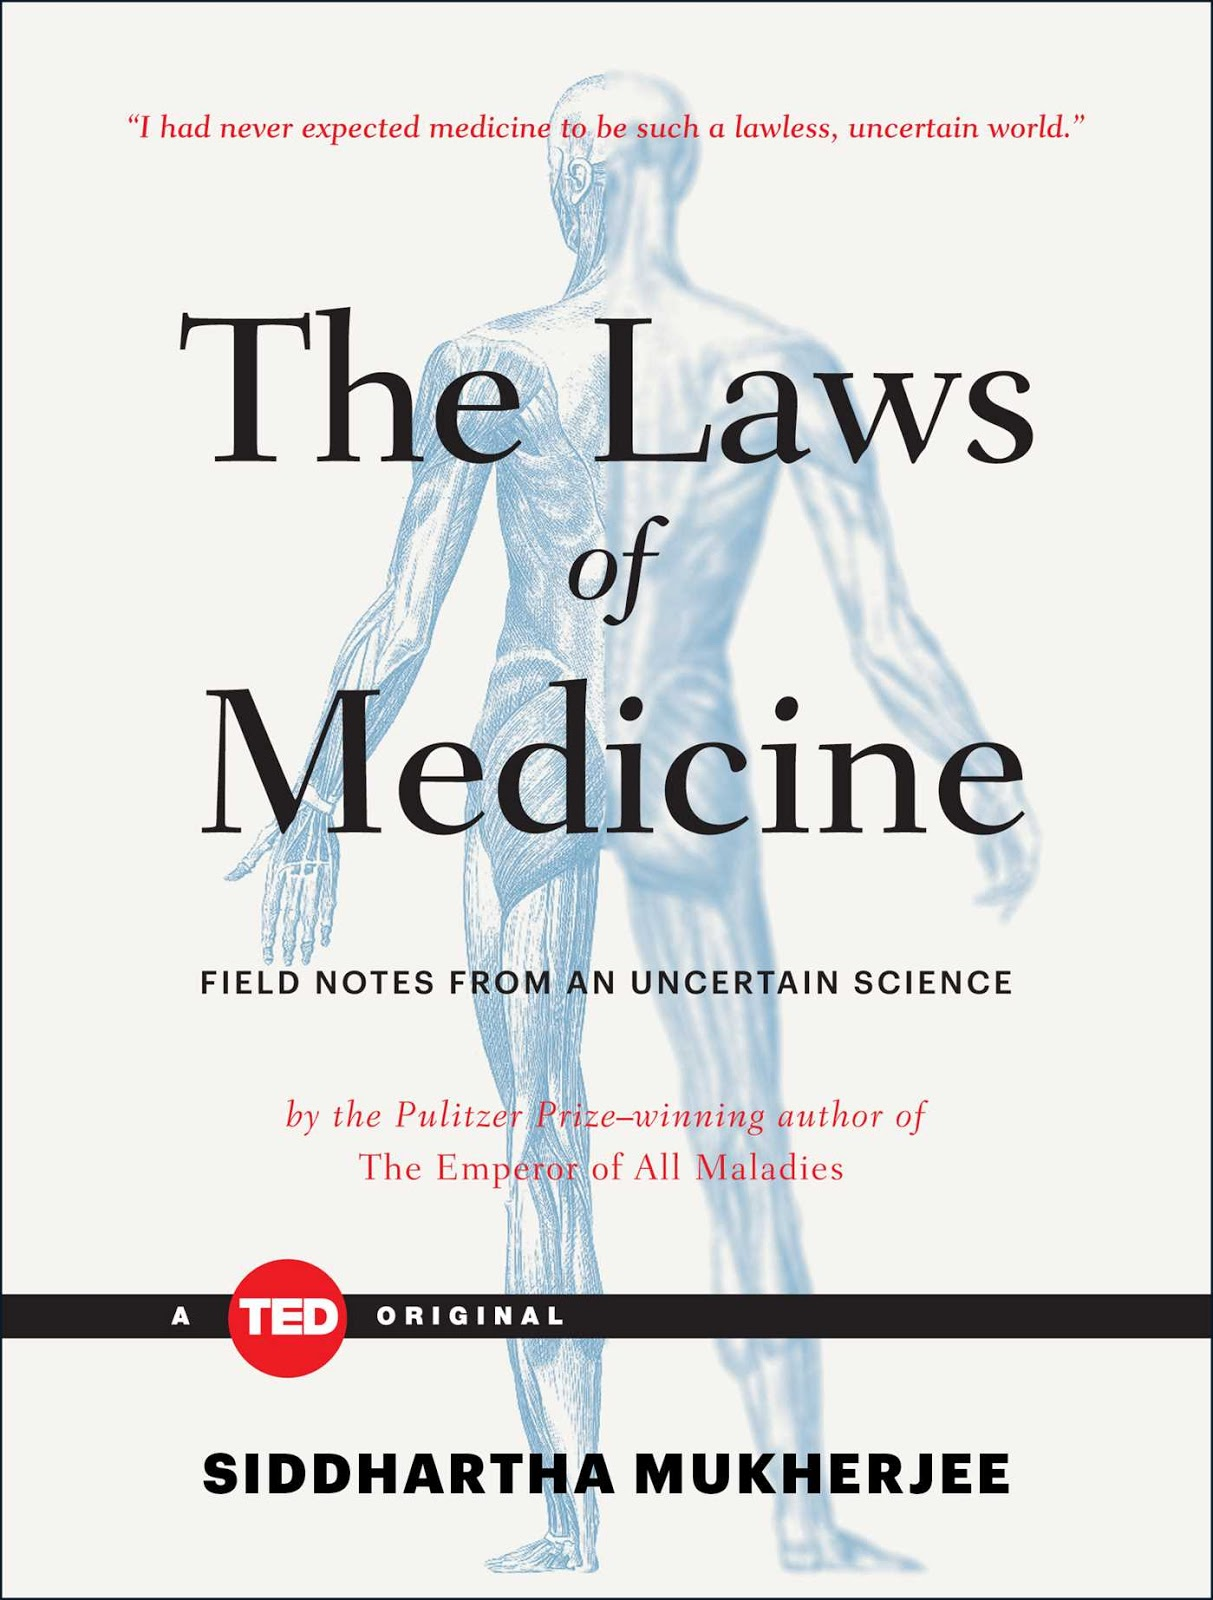 095f13b6d3e The Laws of Medicine, Bias and the Need to Be Nimble